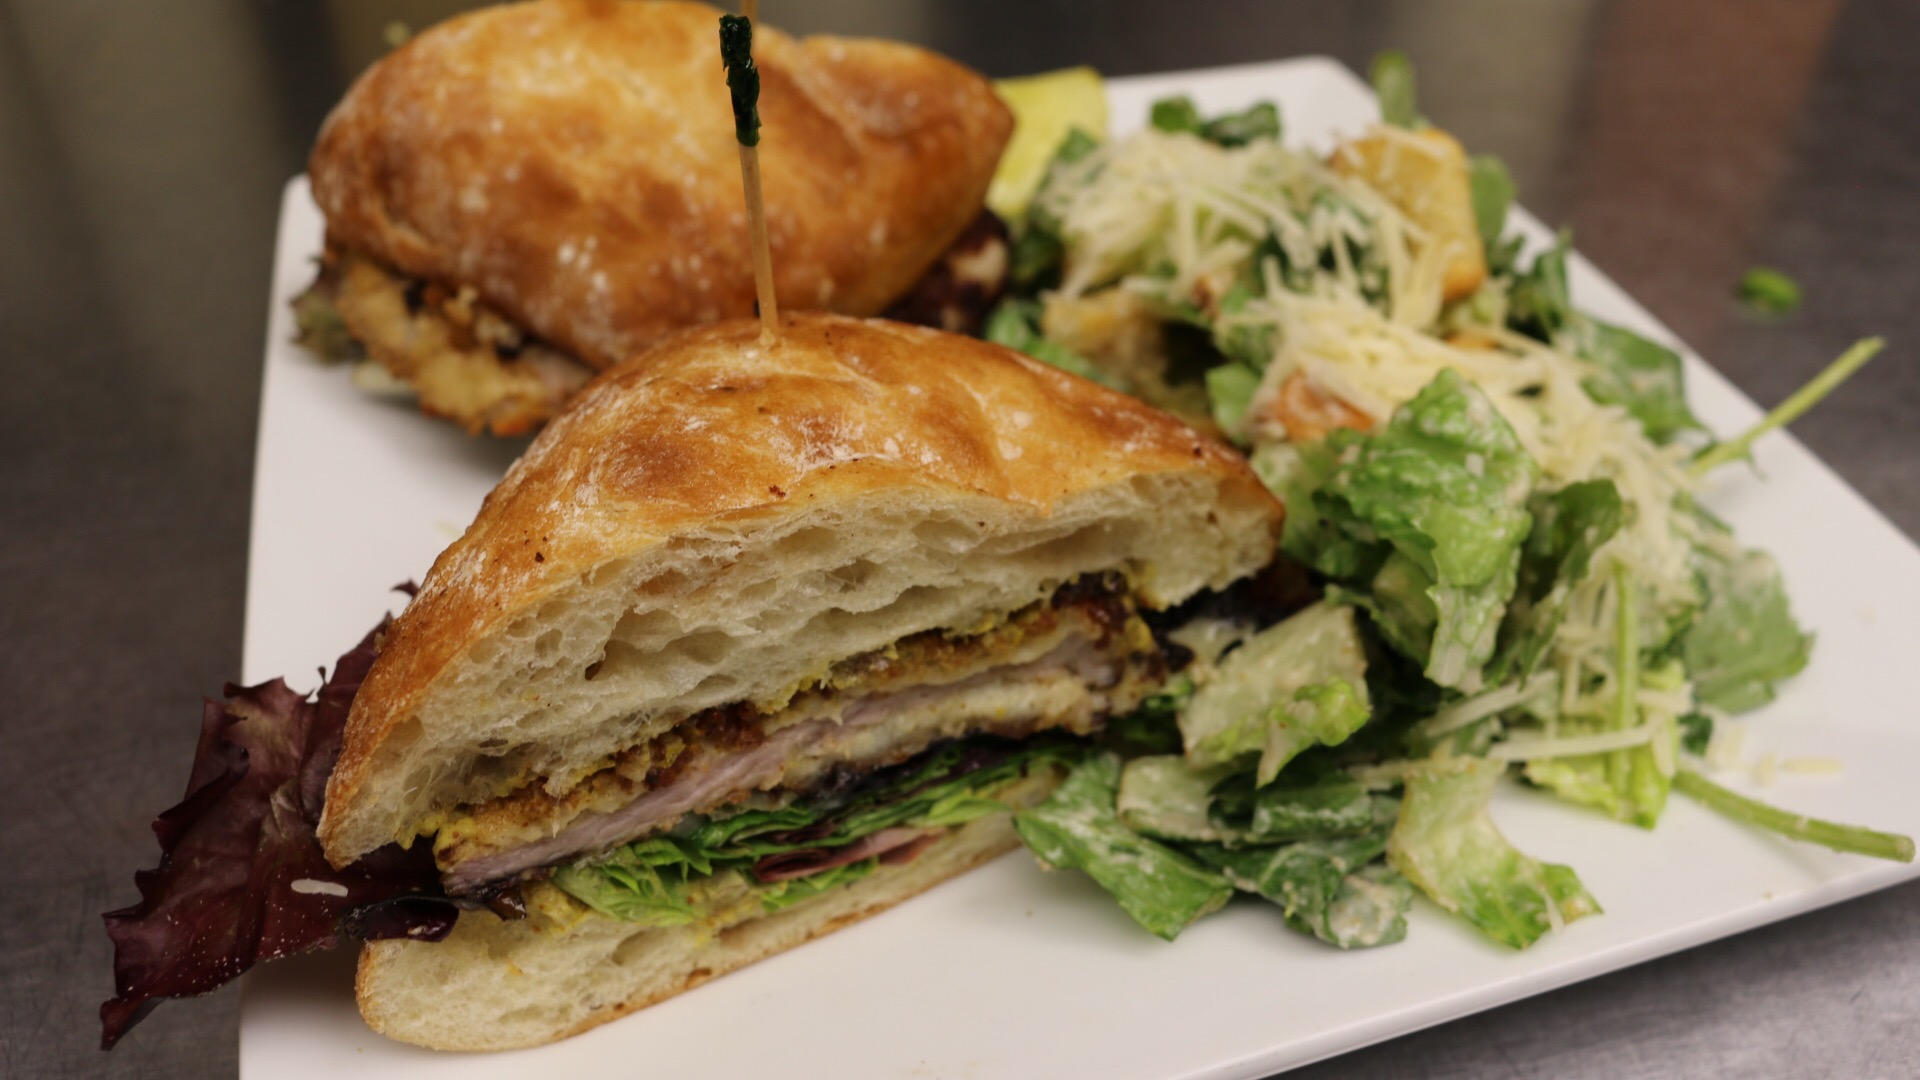 the crispy pork sandwich with a small greek side salad